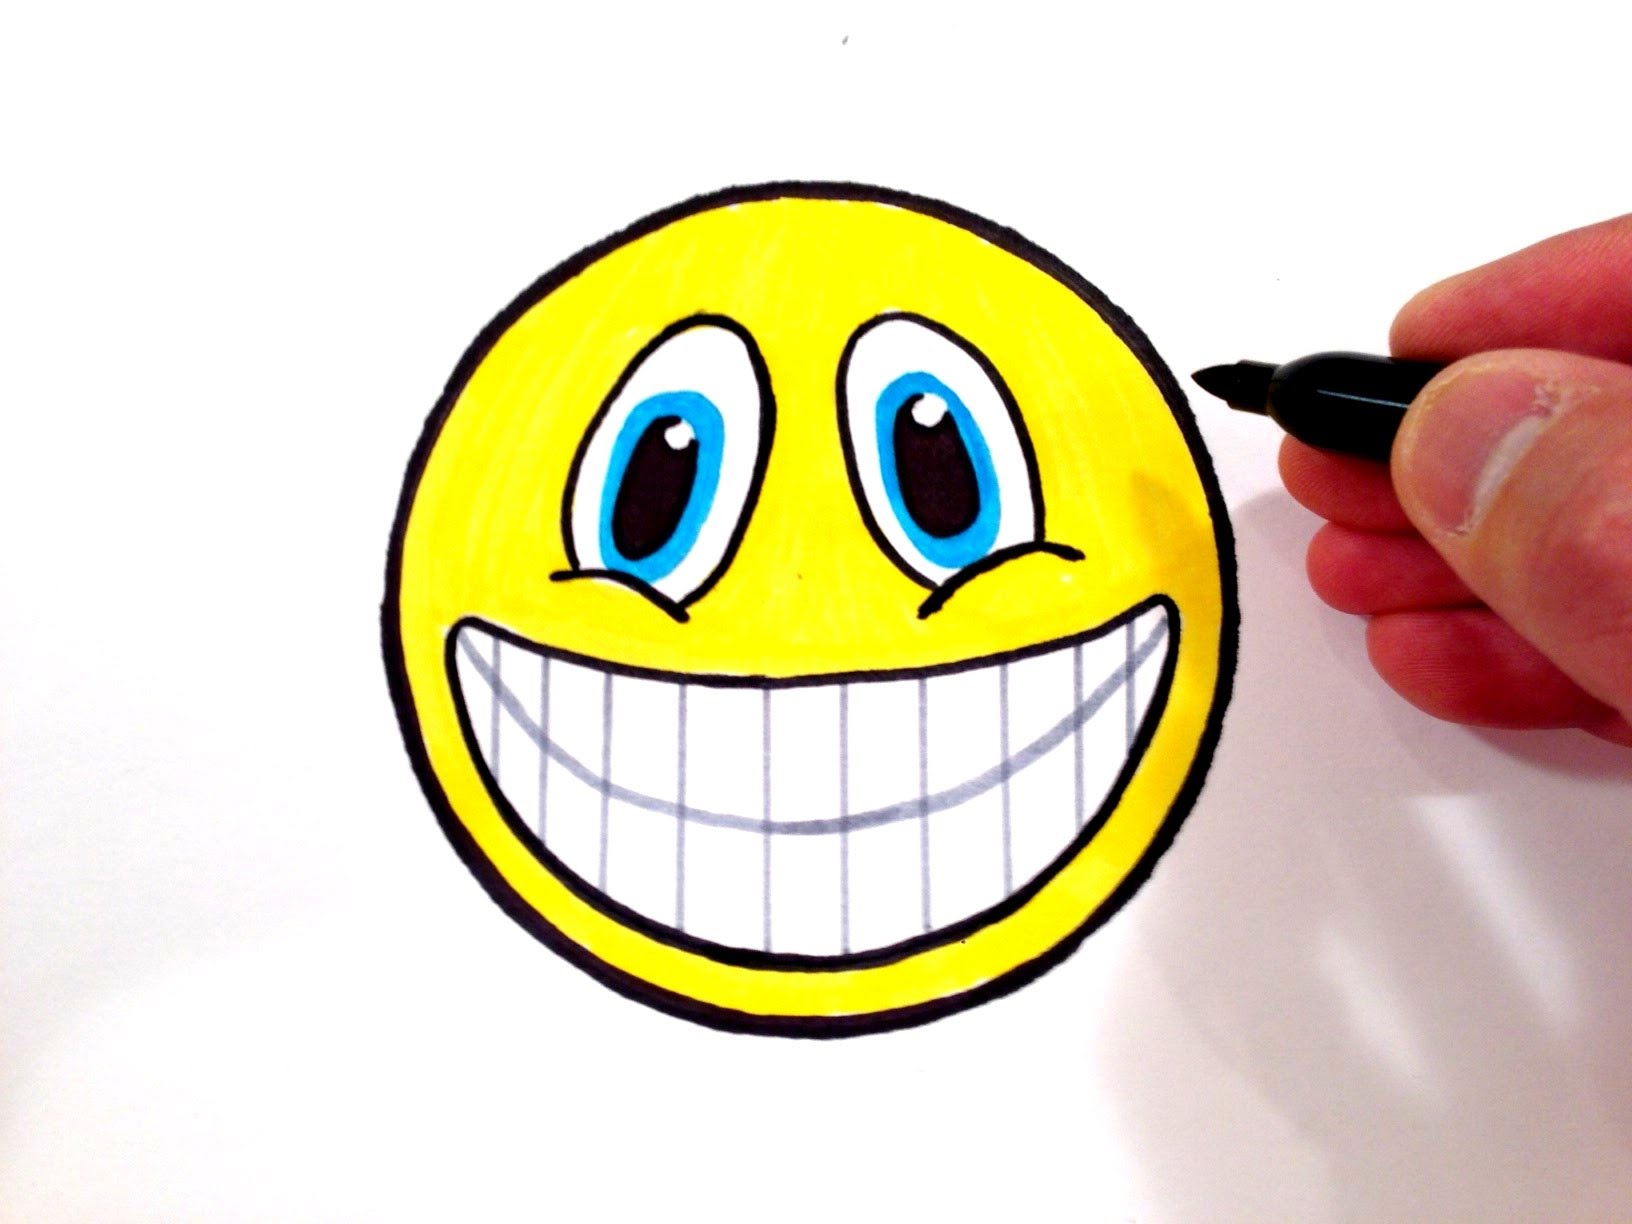 Drawn smile smiley face How  Smiley a YouTube